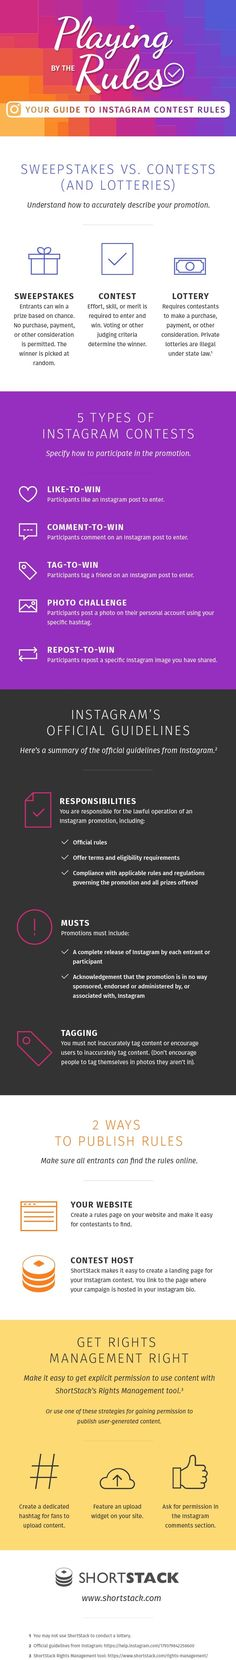 Why Instagram Contests Rule — And How to Play By the Rules - #Infographic